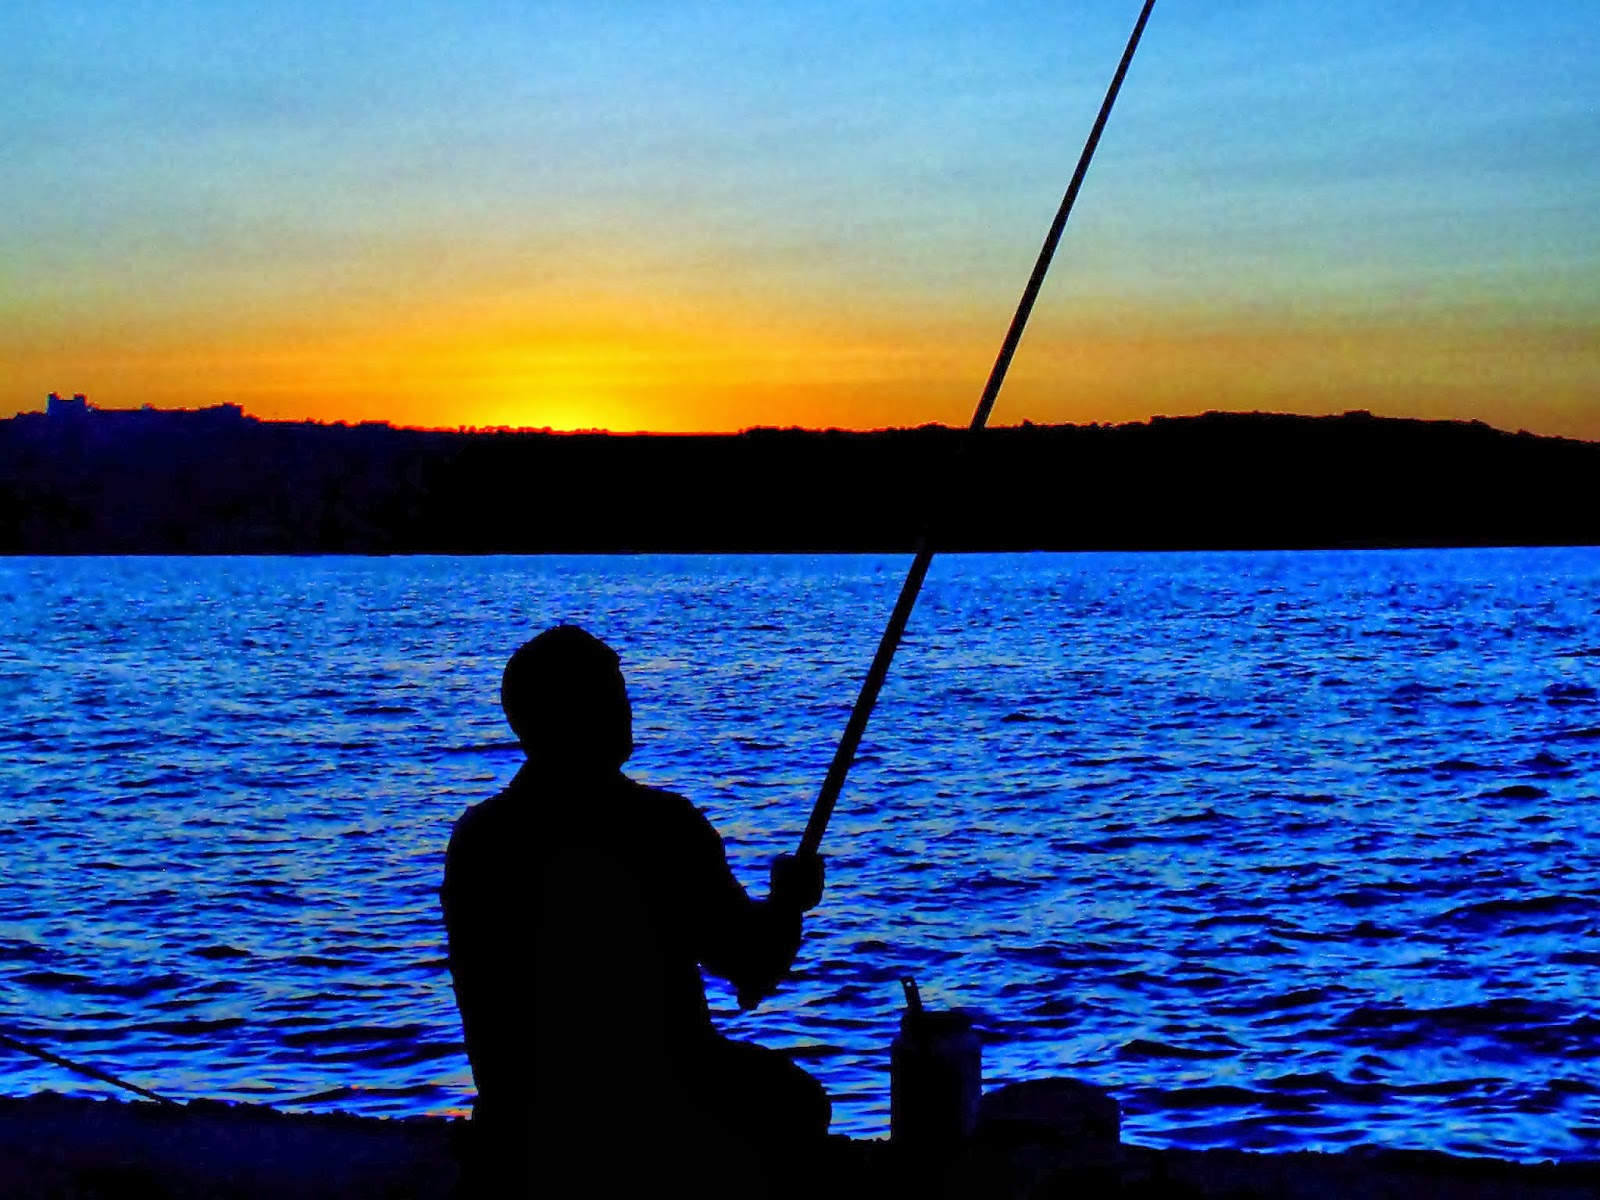 Silhouette of man fishing at sunset.